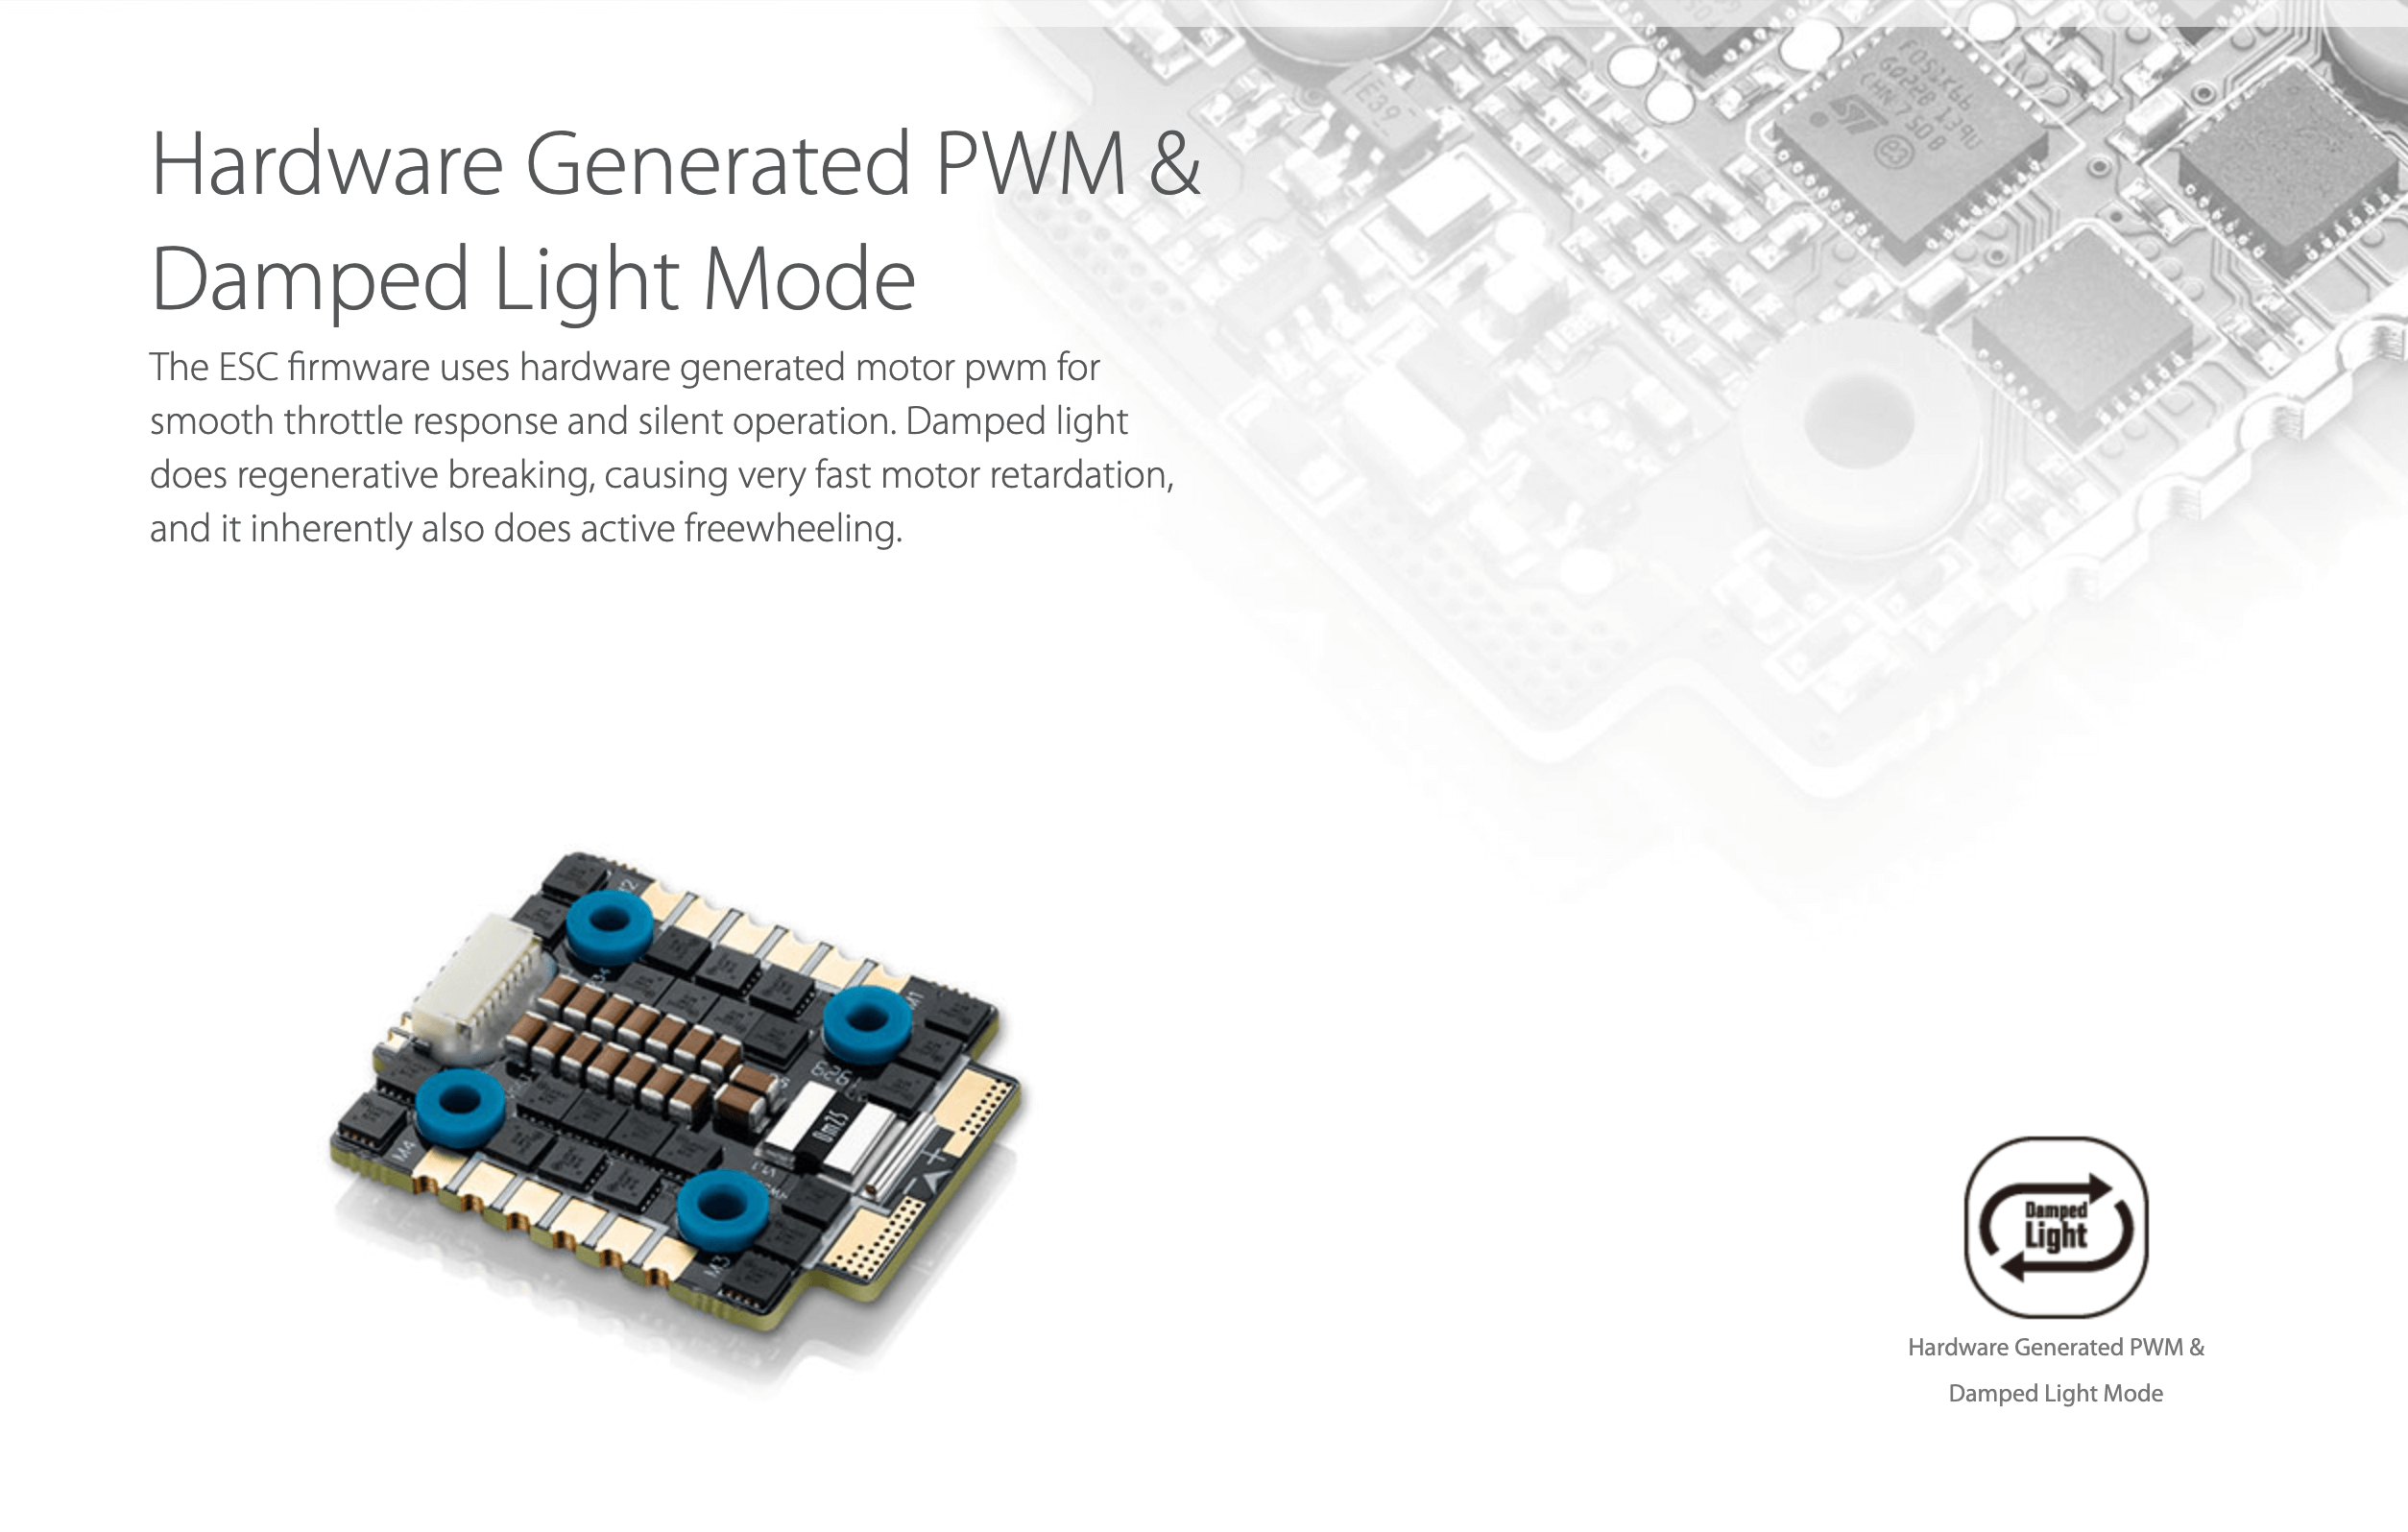 XRotor Micro 40A(20x20) 6S 4in1 ESC hardware generated pwn damped light